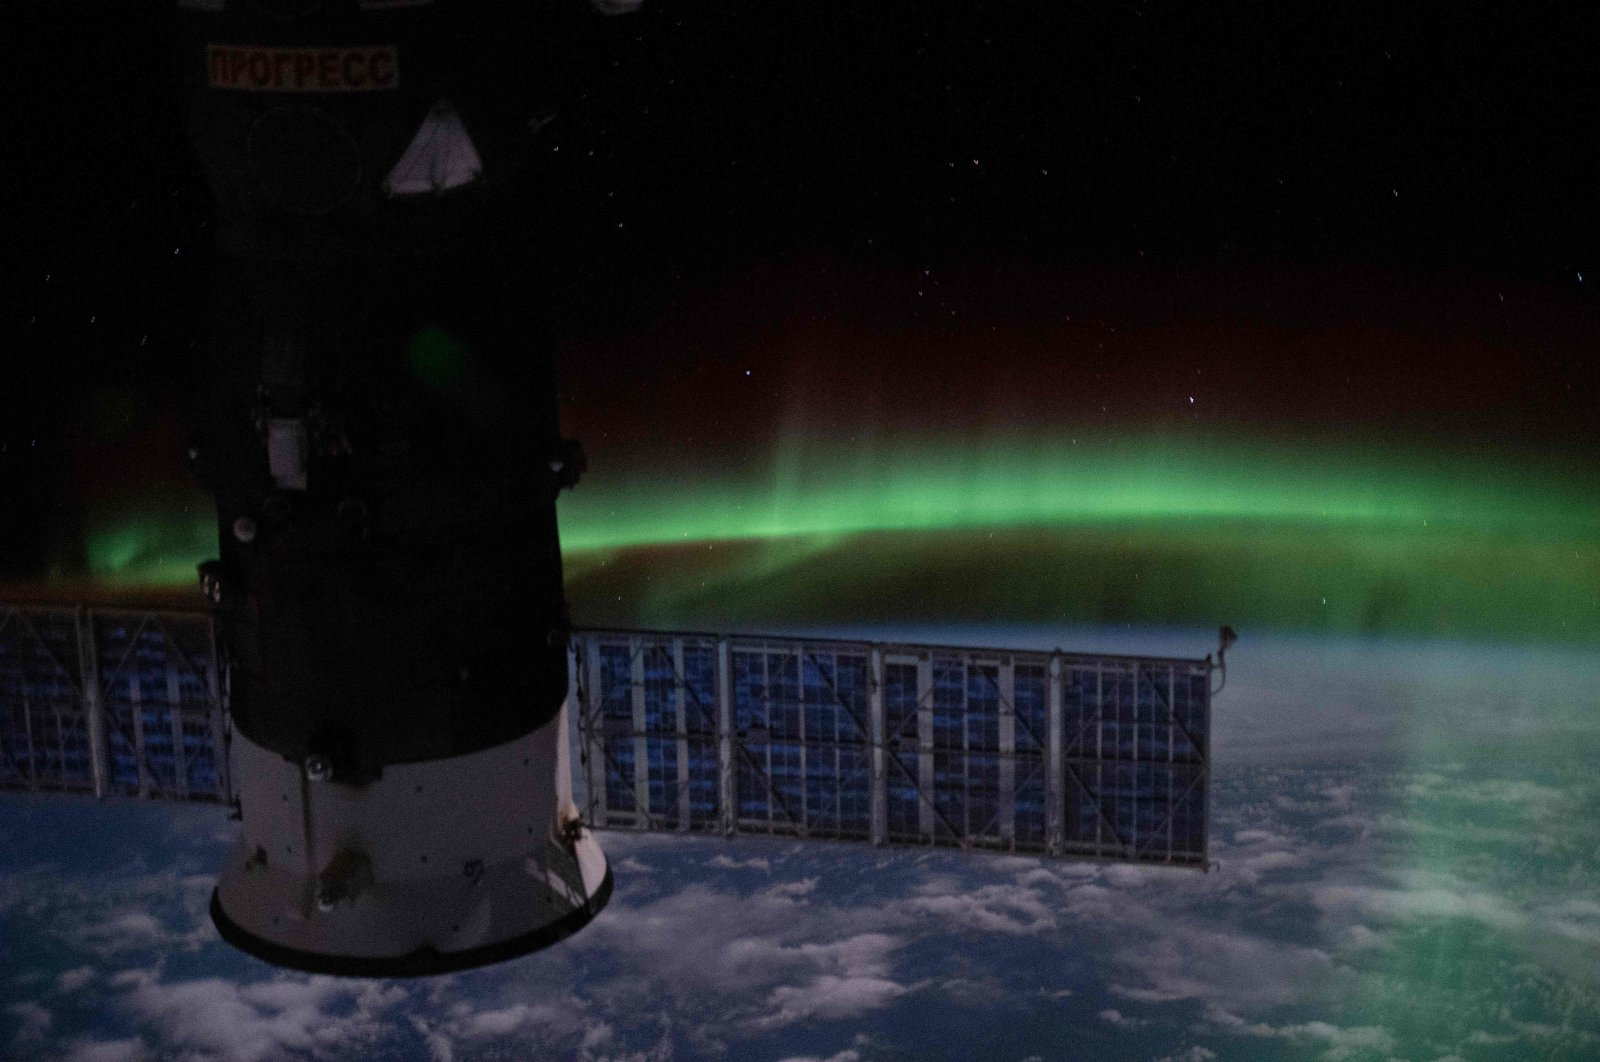 """This handout photo released June 10, 2020, shows an orbital nighttime view from the International Space Station as it orbits above the Indian Ocean with the """"aurora australis"""" and a starry sky with Russia's Progress 74 resupply ship in the foreground on June 7, 2020. (NASA via AFP)"""